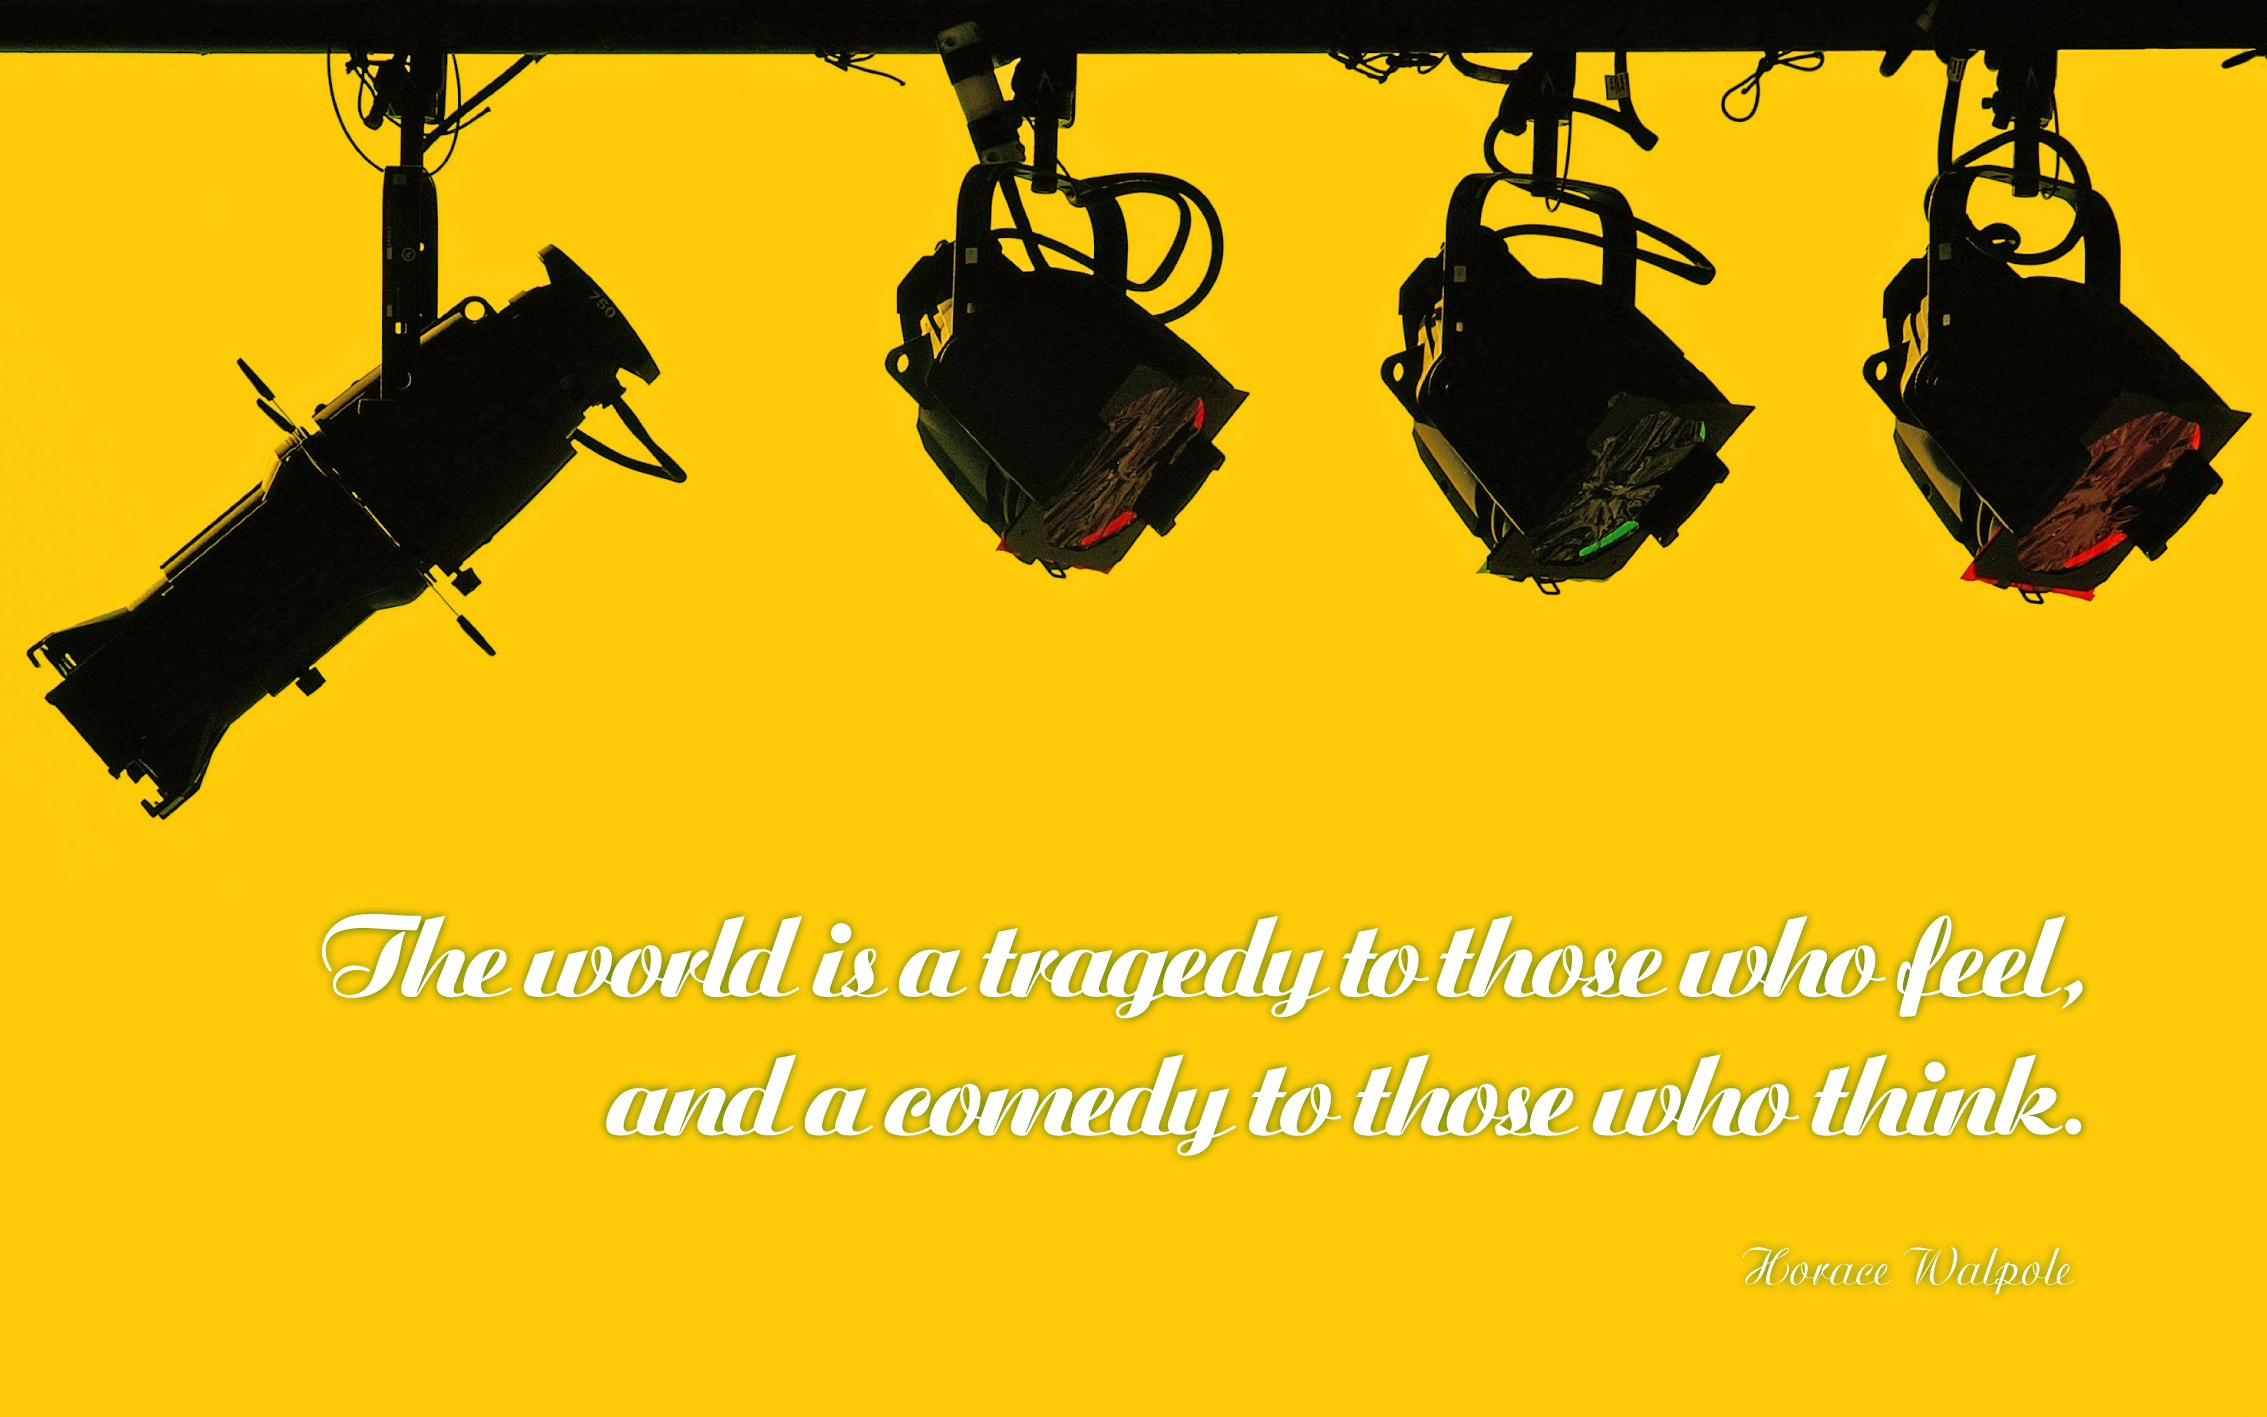 The world is a tragedy to those who feel, and a comedy to those who think. — Horace Walpole [2267×1417]